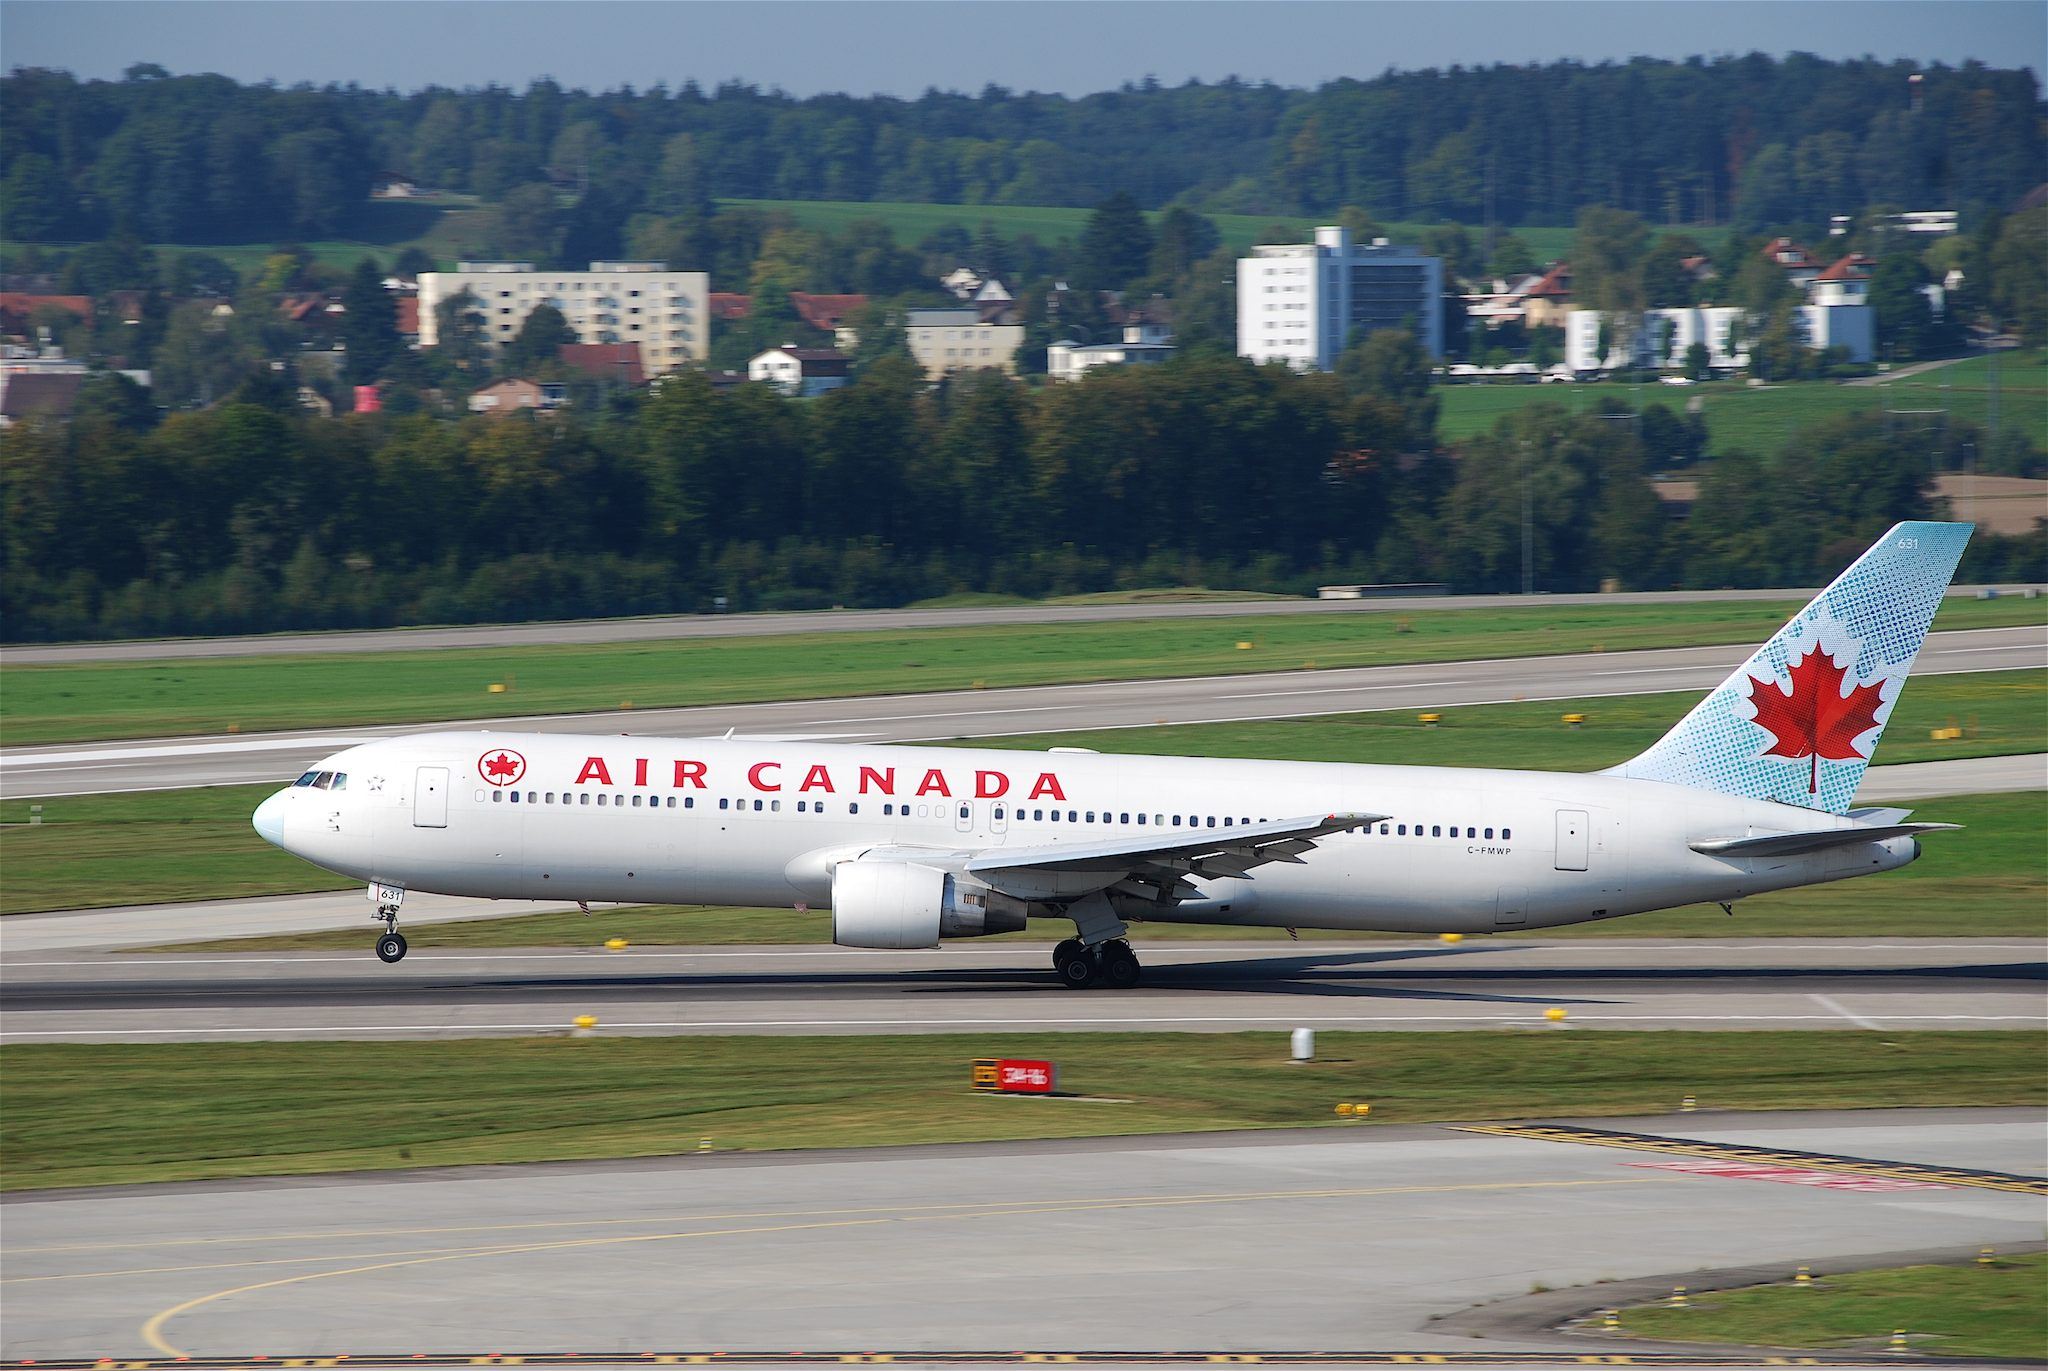 Air Canada Boeing 767-300; C-FMWP@ZRH;10.09.2009/555bw par Aero Icarus sous (CC BY-SA 2.0) - https://www.flickr.com/photos/aero_icarus/4330353712/ / https://creativecommons.org/licenses/by-sa/2.0/